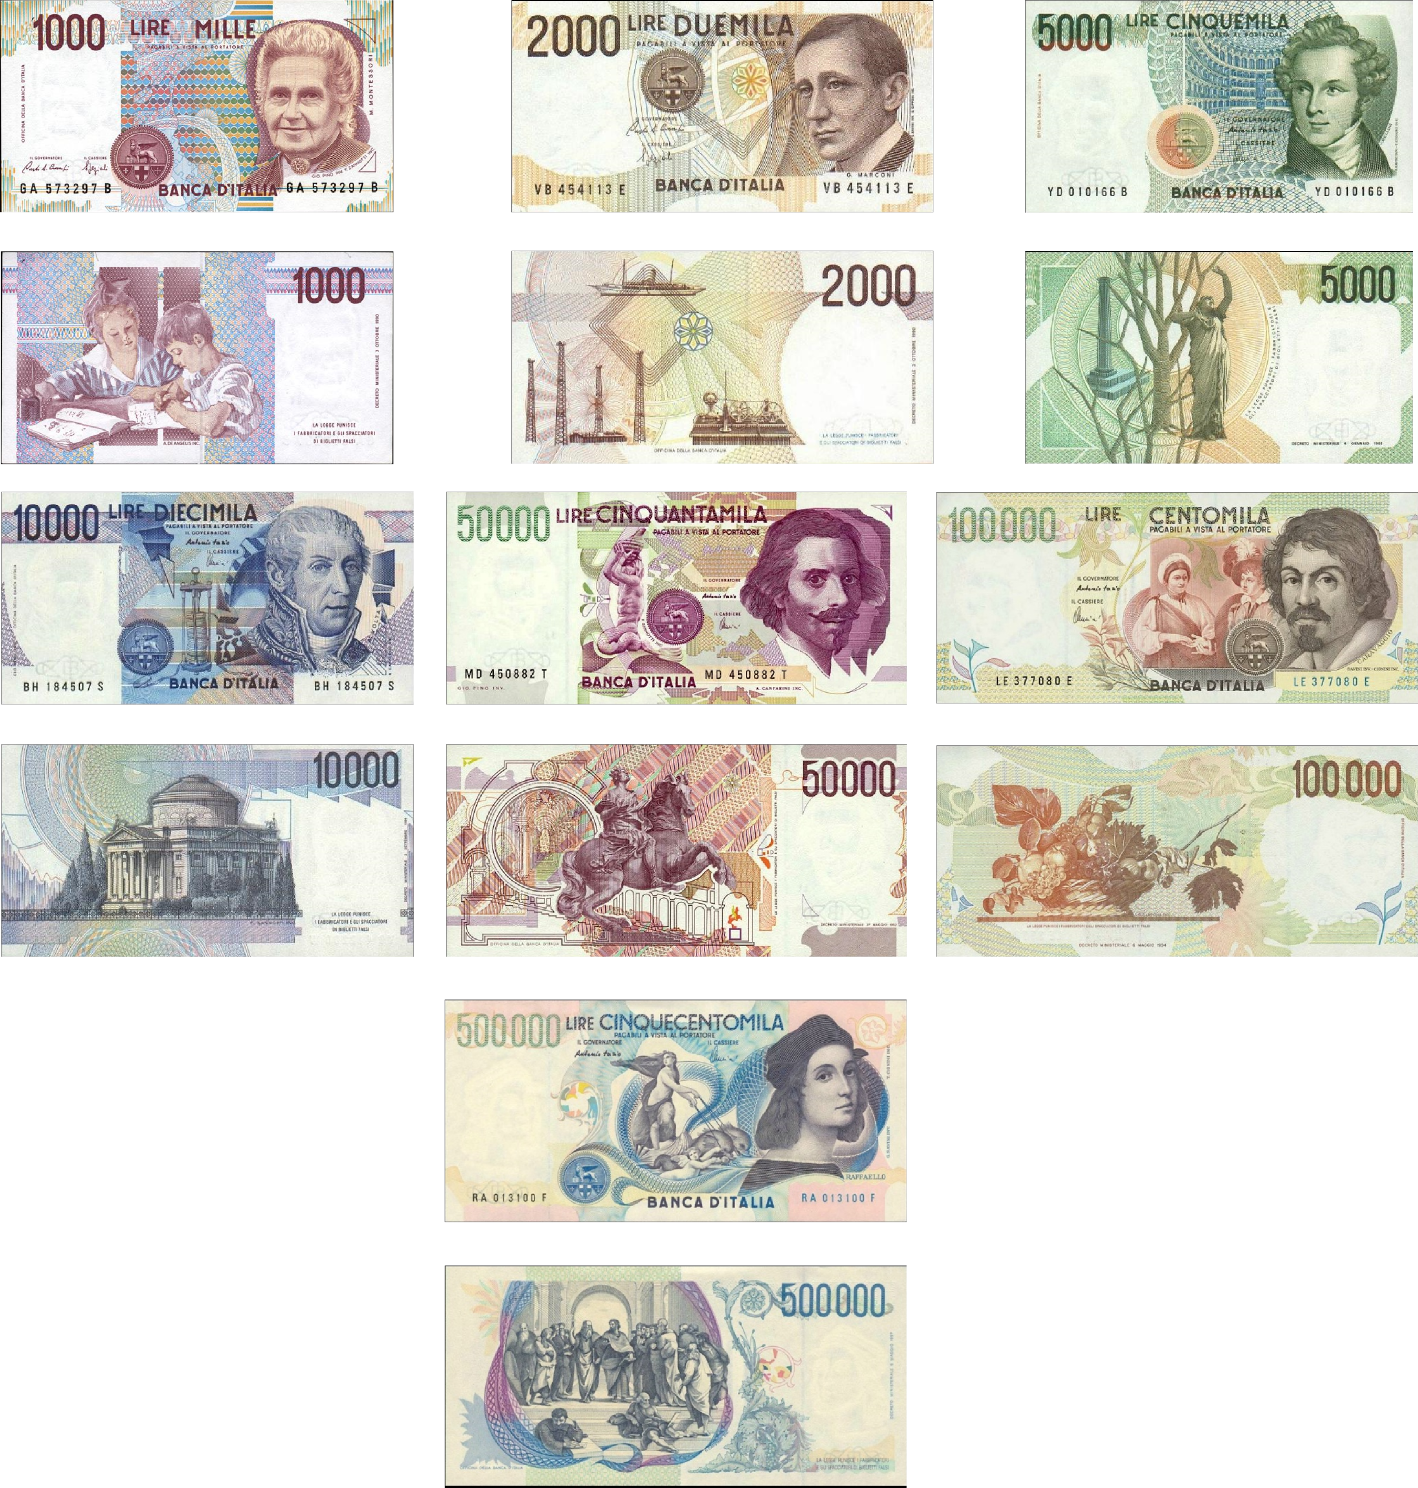 Italian money bills